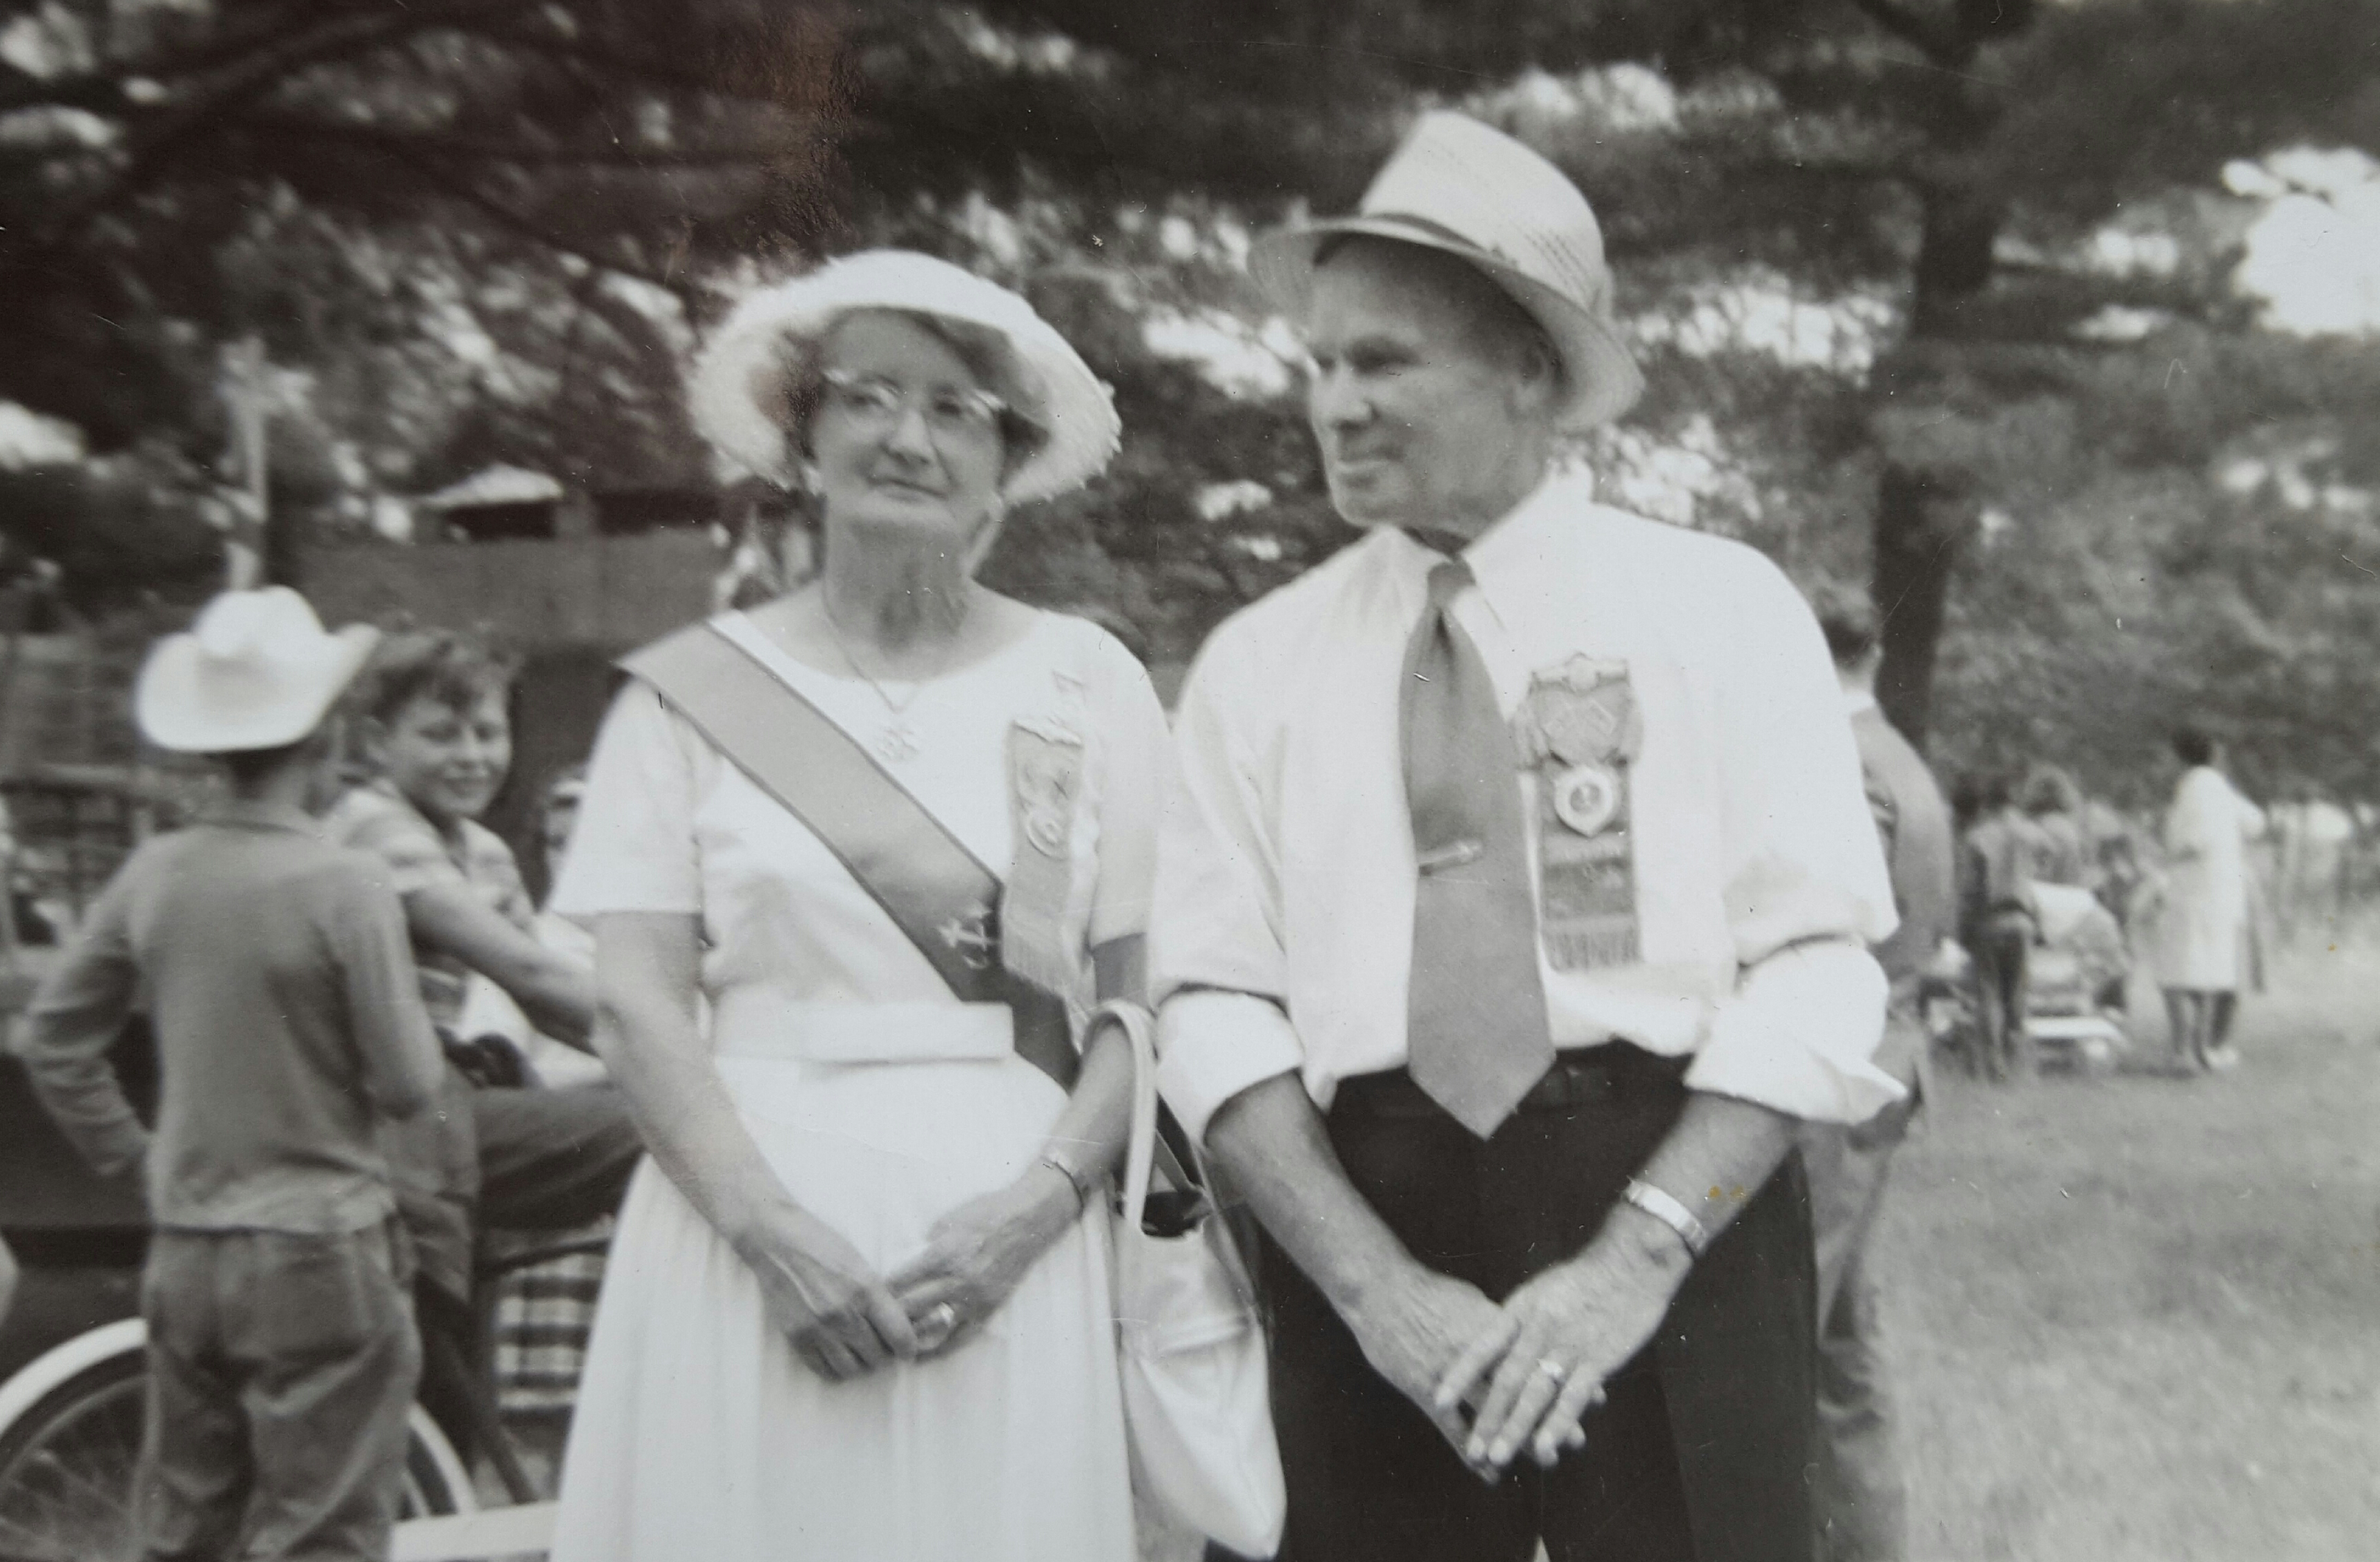 Group Photo – This is a picture of Ira's Sister, Elizabeth Mae Young and her husband Frank Harrington. I am their Great Grand-Daughter and Ira was my Great Uncle.